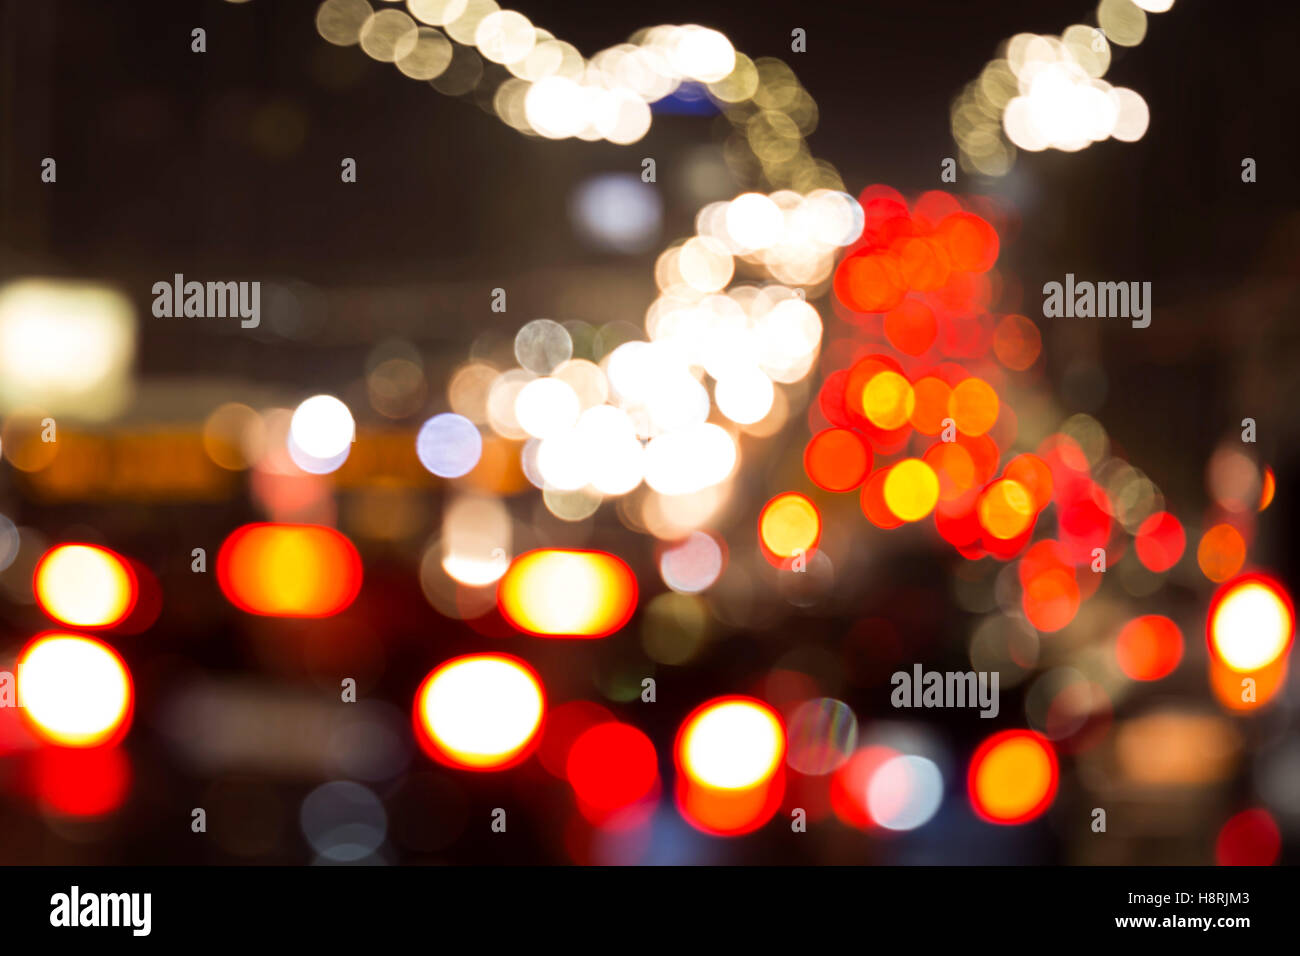 Blurred car lights. Out of focus traffic lights of cars on the sreet. Bokeh lights from traffic jam on night time - Stock Image